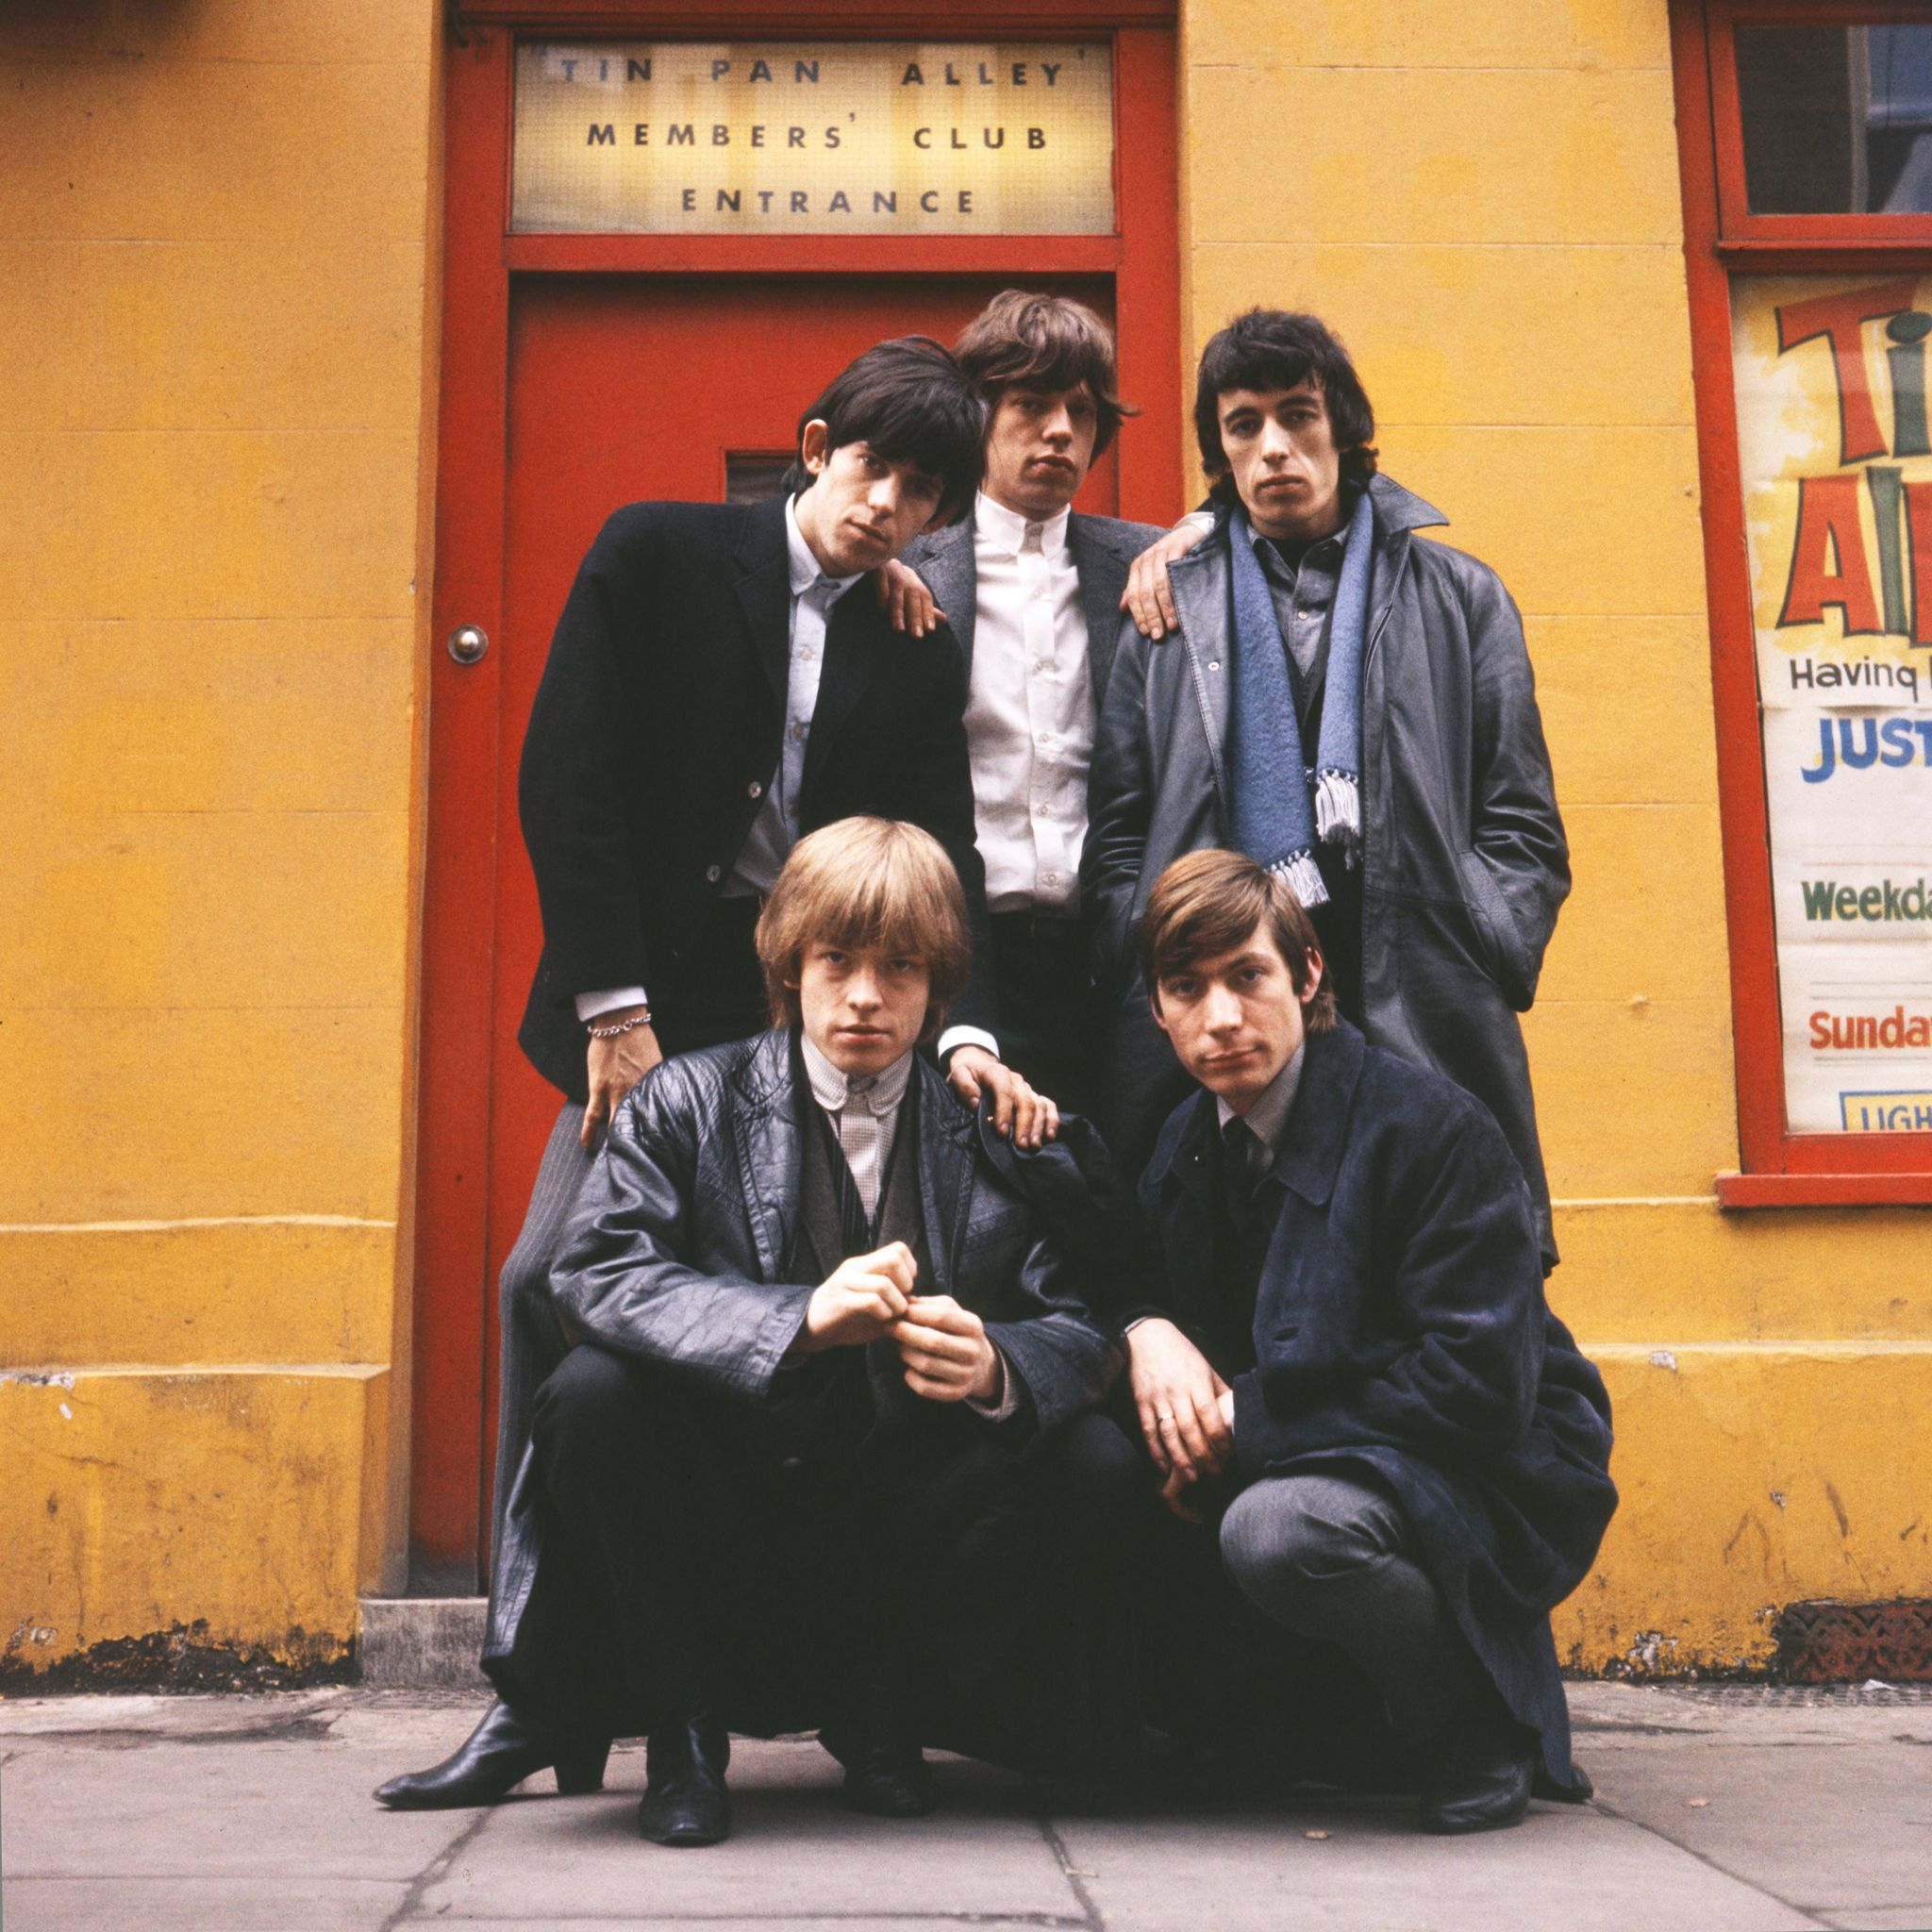 Terry O'Neill CBE shot of The Rolling Stones who line up outside the Tin Pan Alley Club in London, 1963